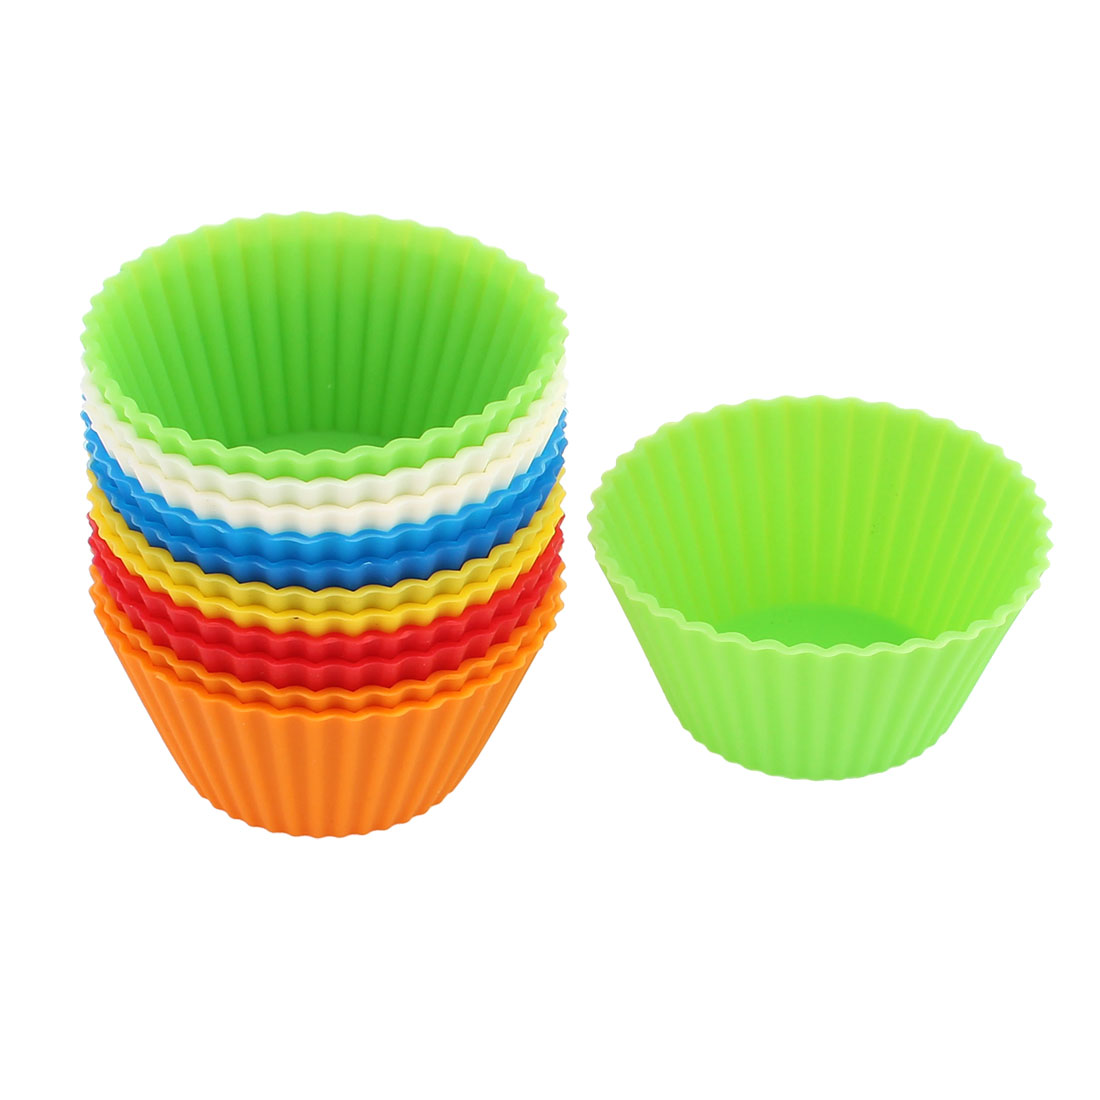 Unique Bargains Silicone Muffin Egg Tart Cake Mold Cupcake Baking Cup Mould Assorted Color 12PCS